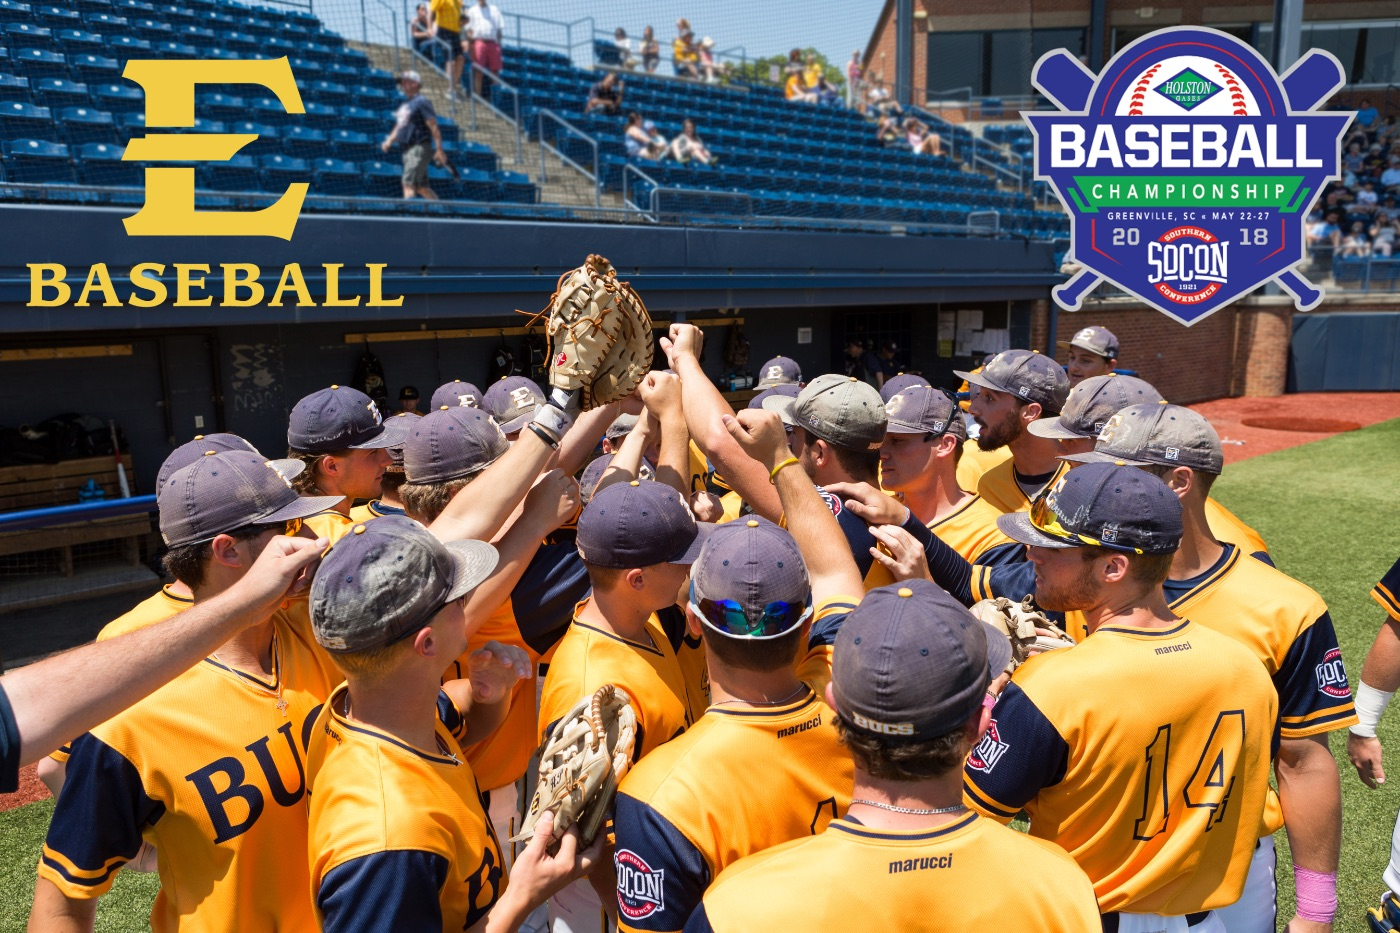 ETSU baseball begins SoCon title quest Wednesday